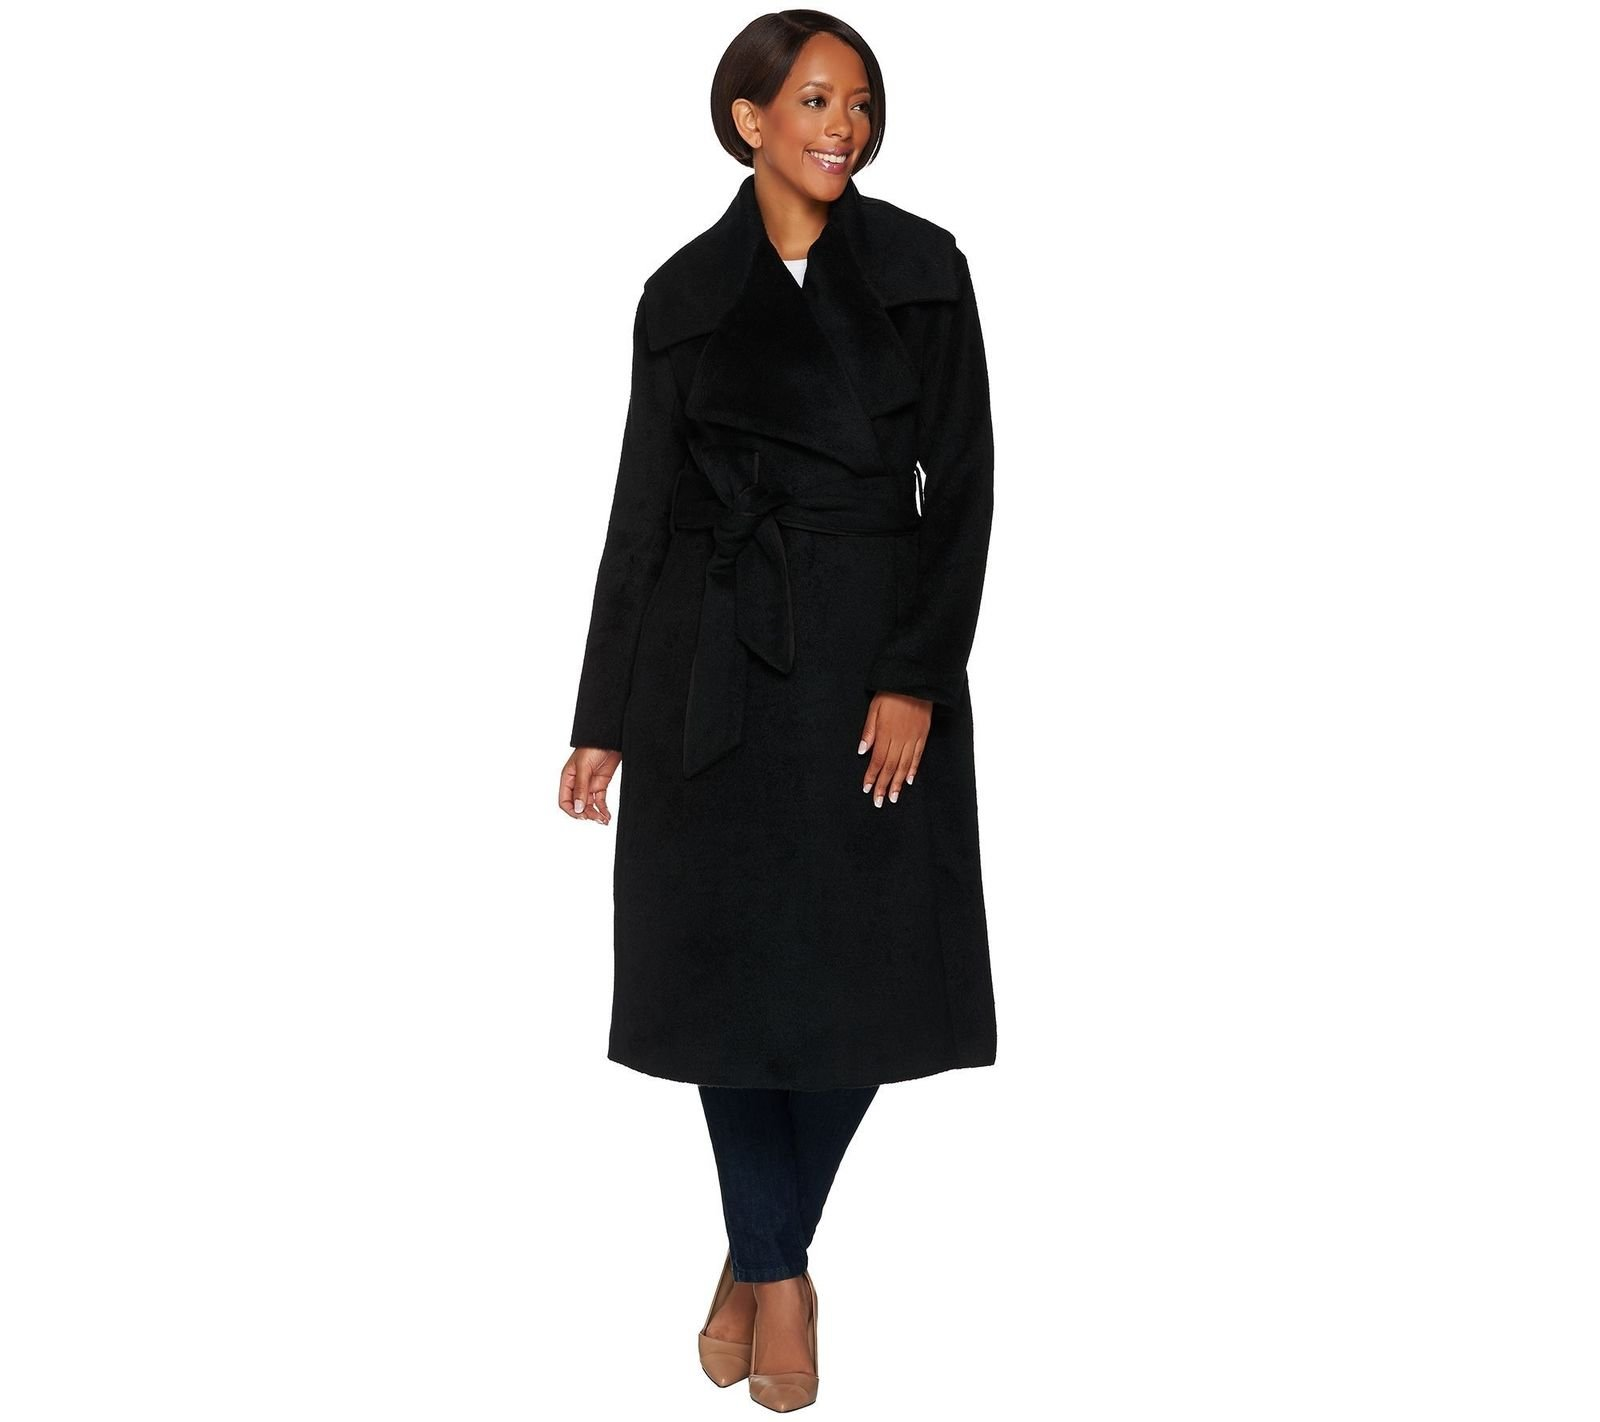 G.I.L.I. Gili Classic Style Notch Collar Belted Trench Coat Noir Black 18W New A279810